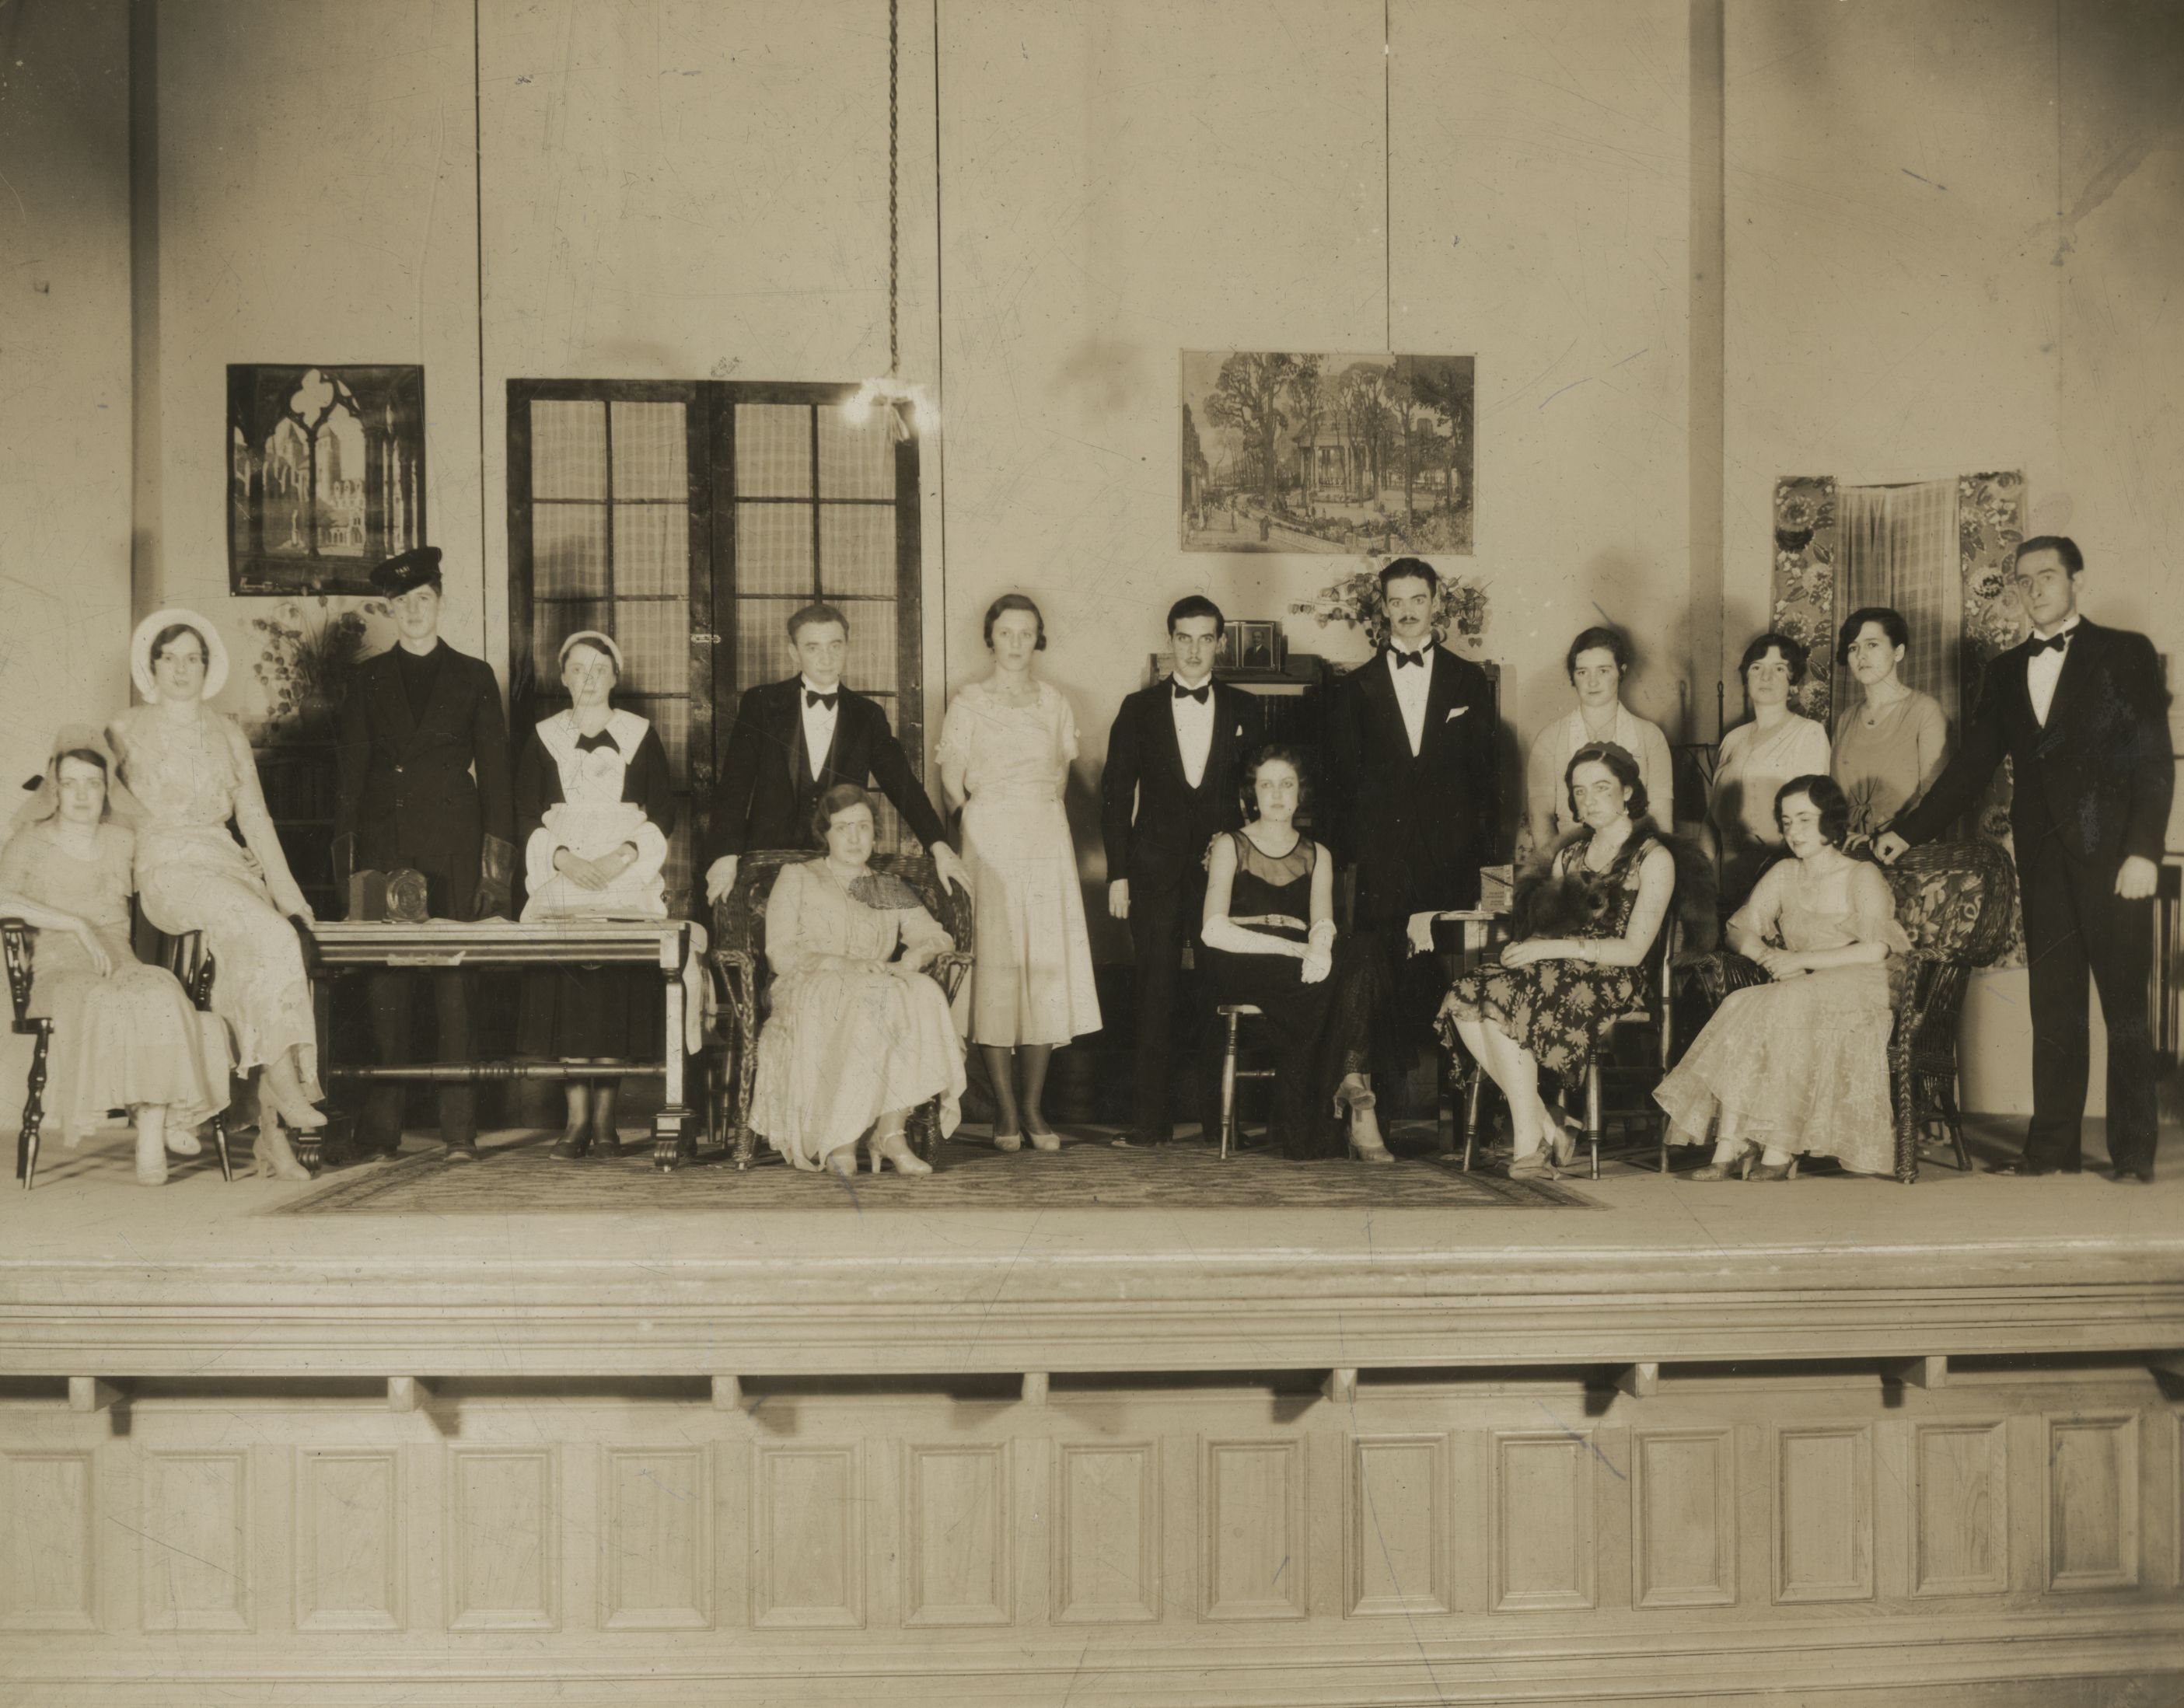 A group of sixteen men and women stand or sit on stage in costumes. Most of them are wearing tuxedos or evening dresses typical of the period, with the exception of one man dressed in a soldier's uniform and one woman dressed as a maid. The stage has been decorated with chairs, tables, a fake window, and posters on the walls.